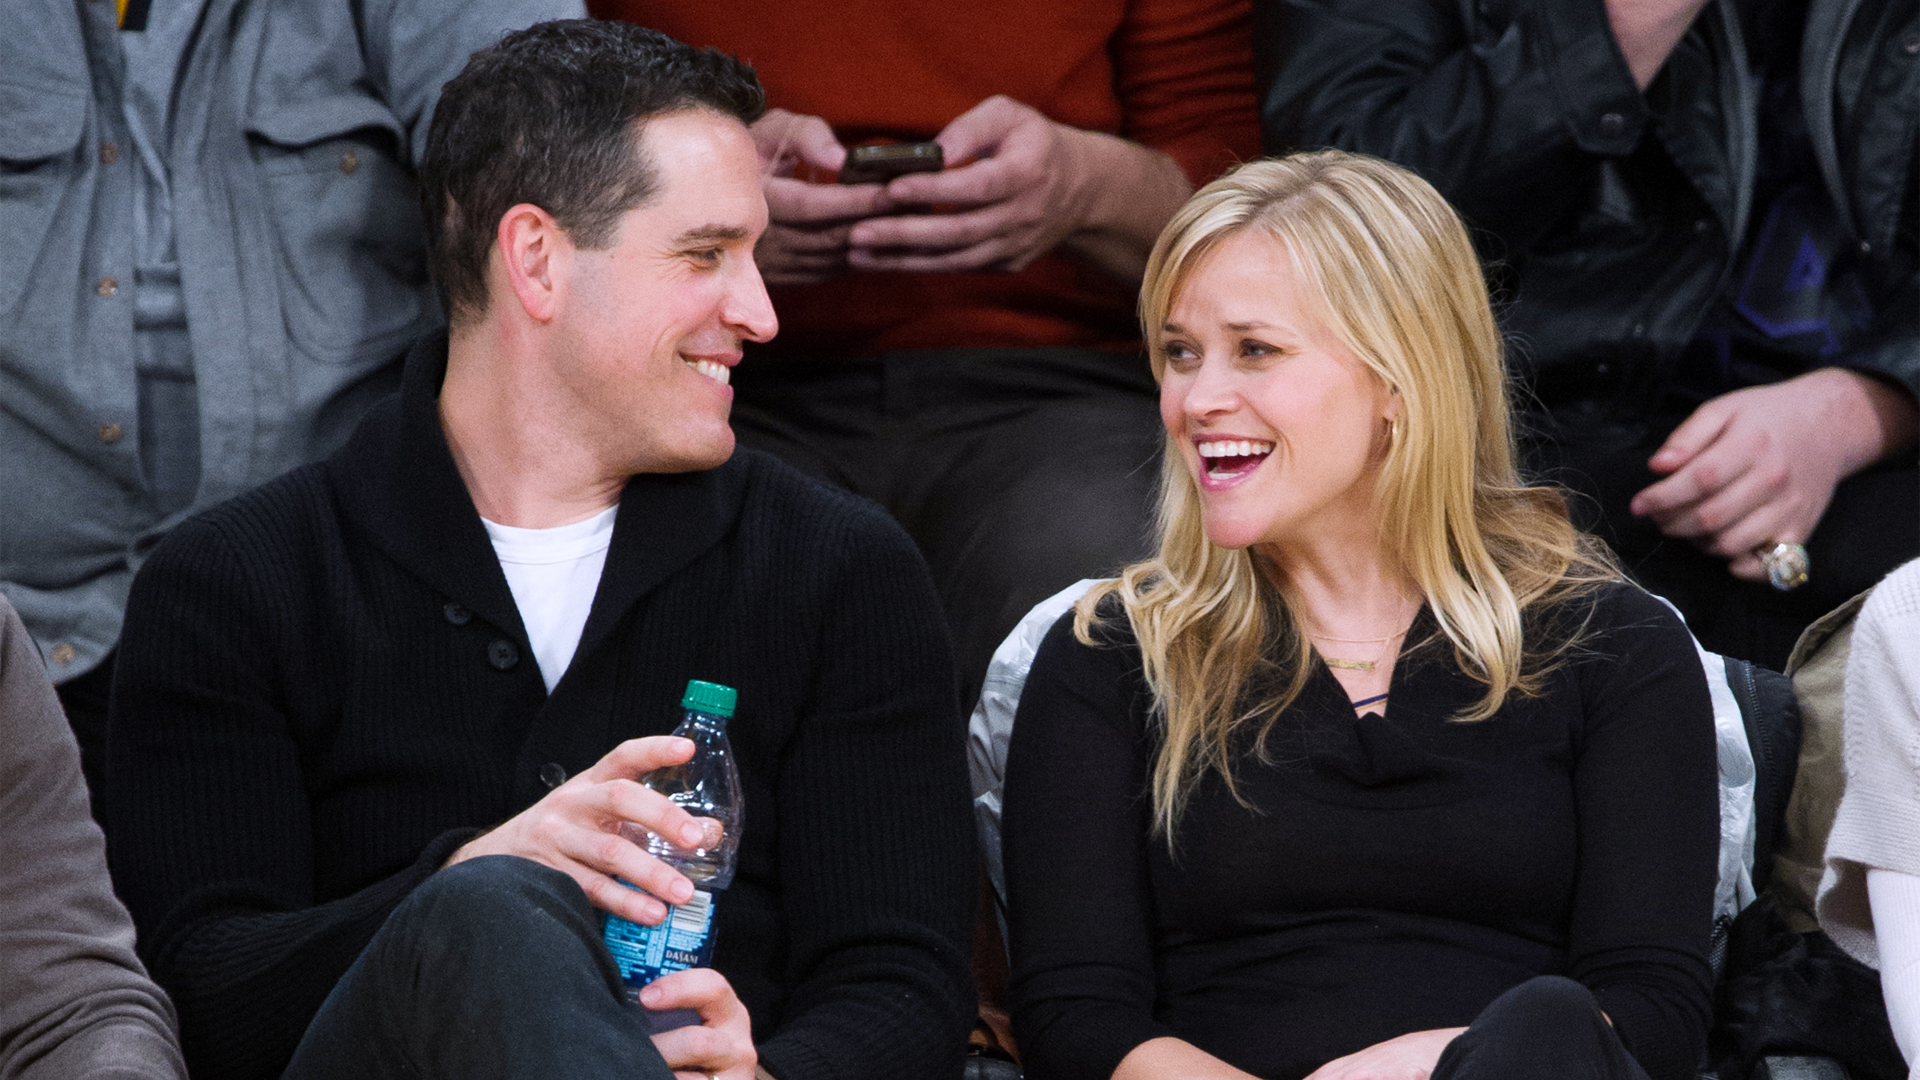 Reese Witherspoon cheated on Jim Toth with a Mystery Guy